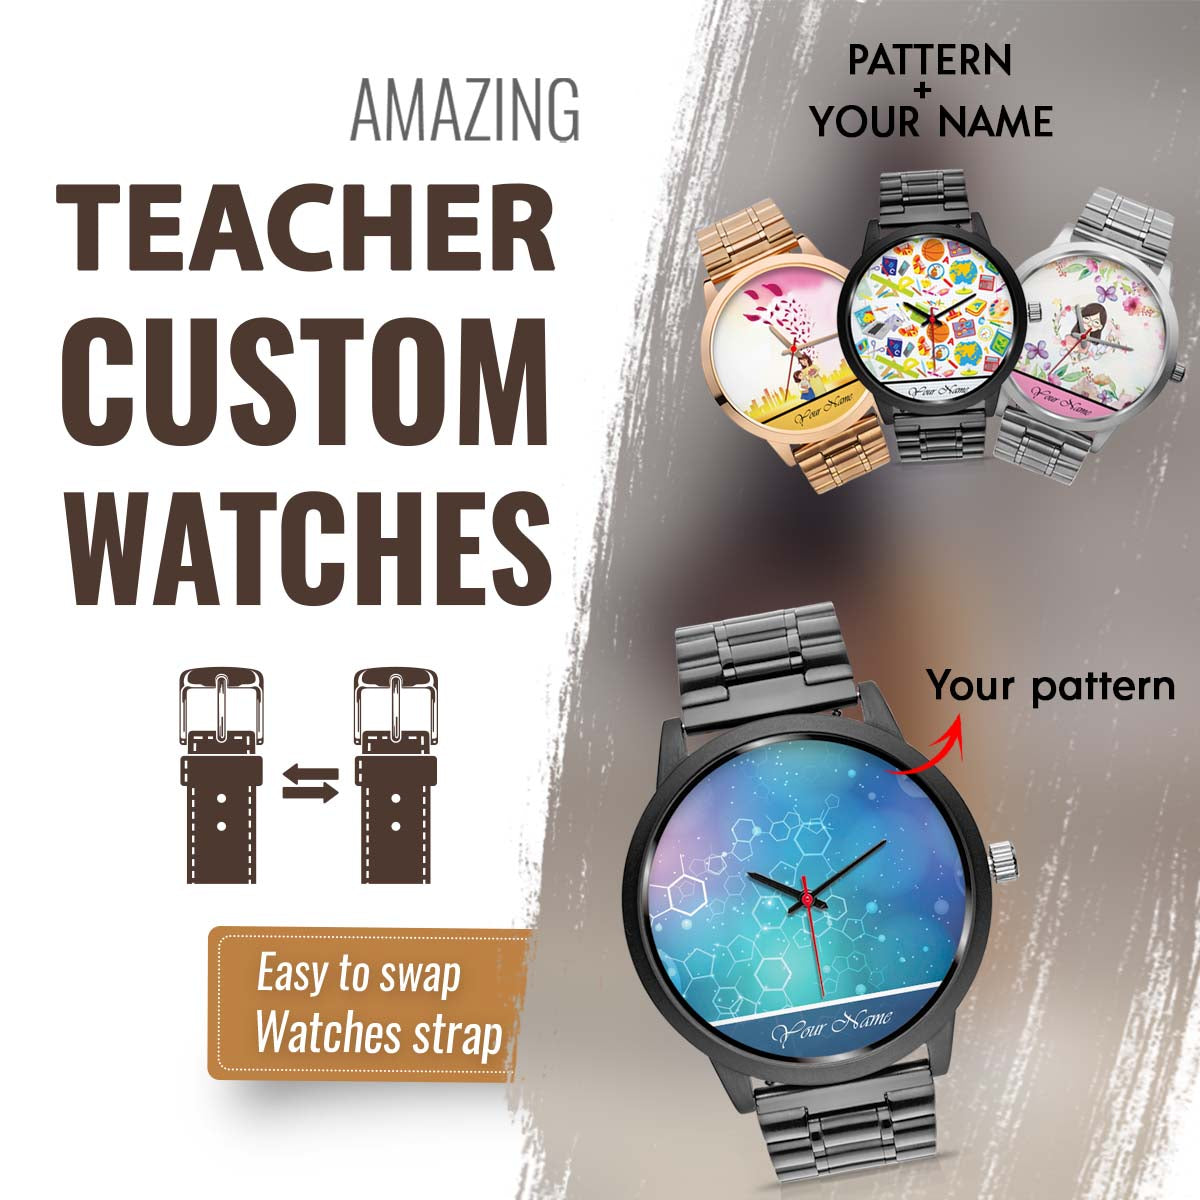 PERSONALIZED WATCH - PUT YOUR FAVORITE PATTERN & YOUR NAME ON YOUR WATCH